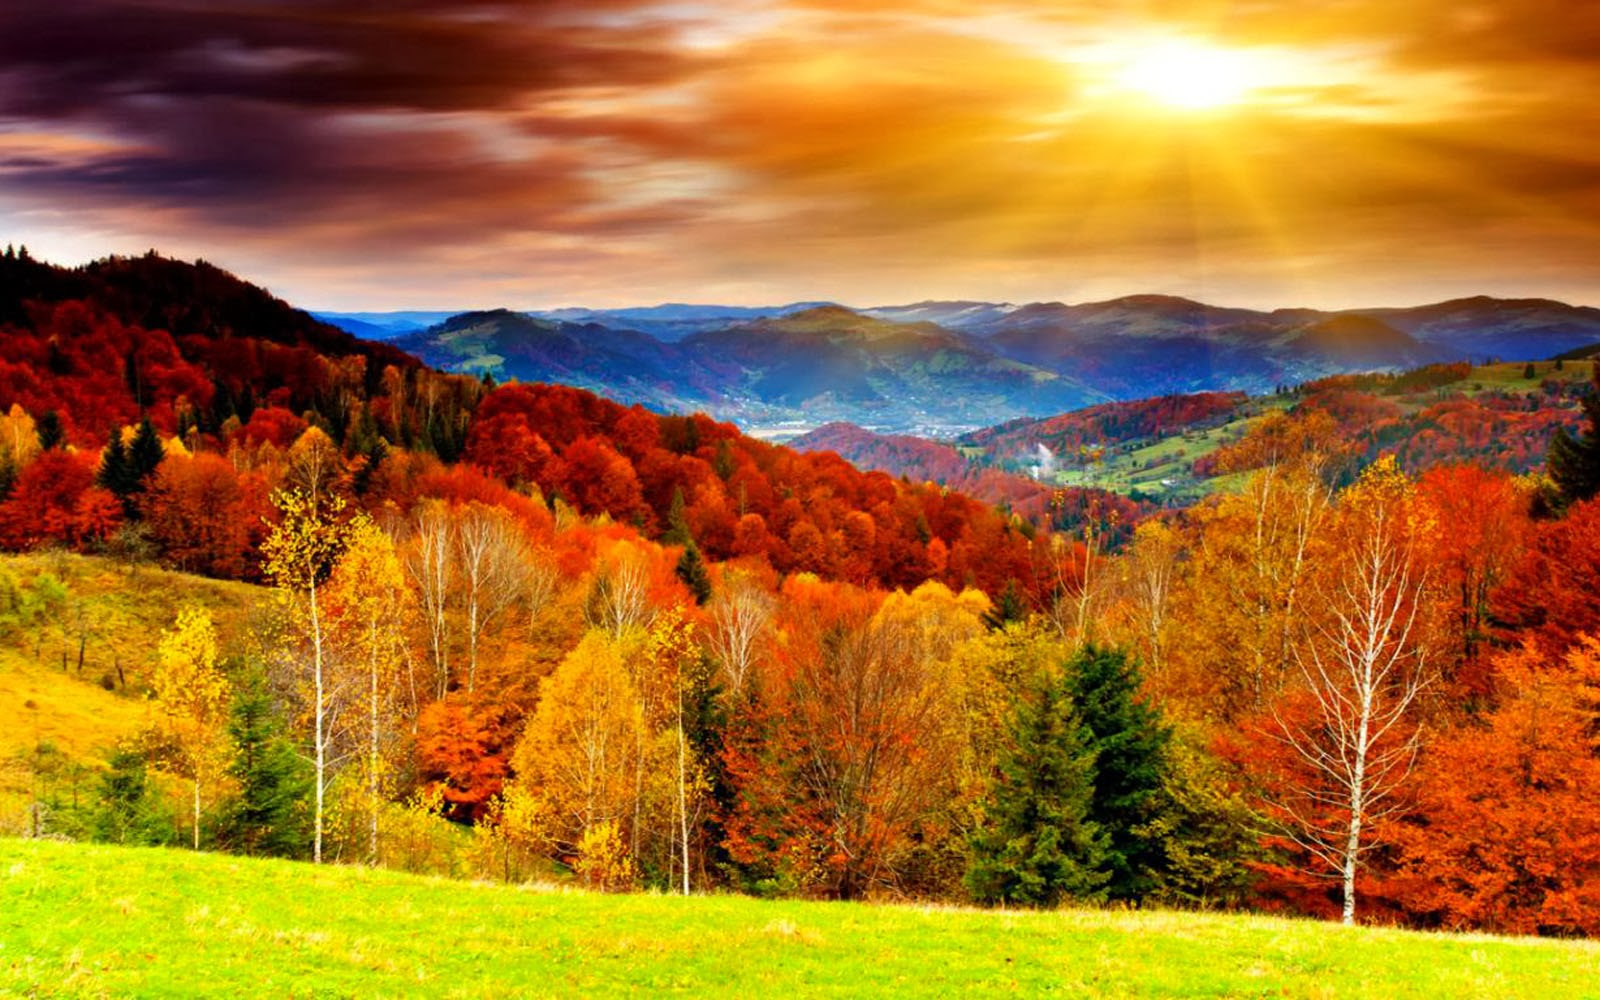 Tag Autumn Scenery Wallpapers BackgroundsPhotos Images and 1600x1000